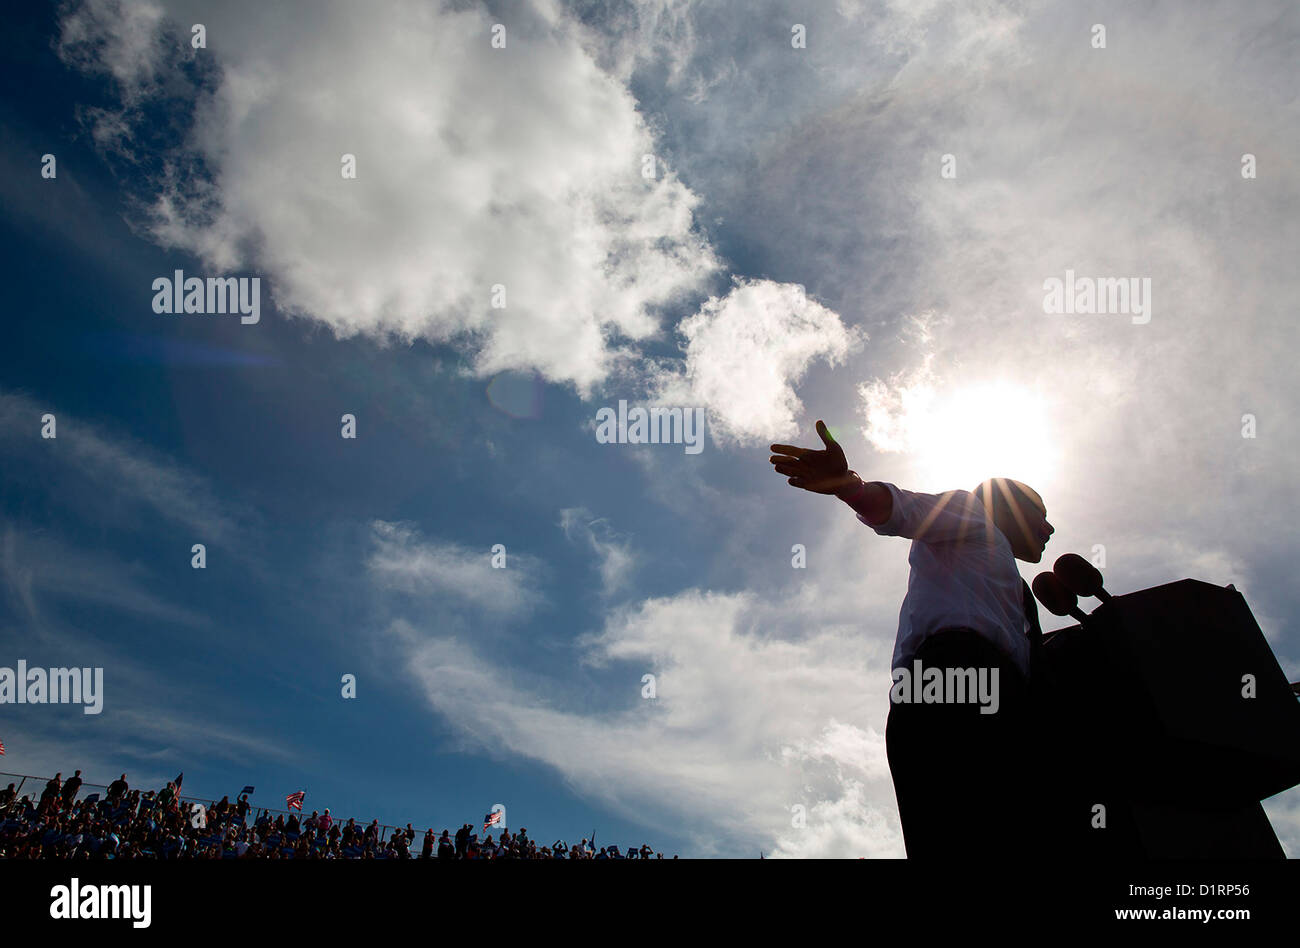 US President Barack Obama addresses a crowd during a election campaign rally Oct. 23, 2012 in Delray Beach, FL. - Stock Image